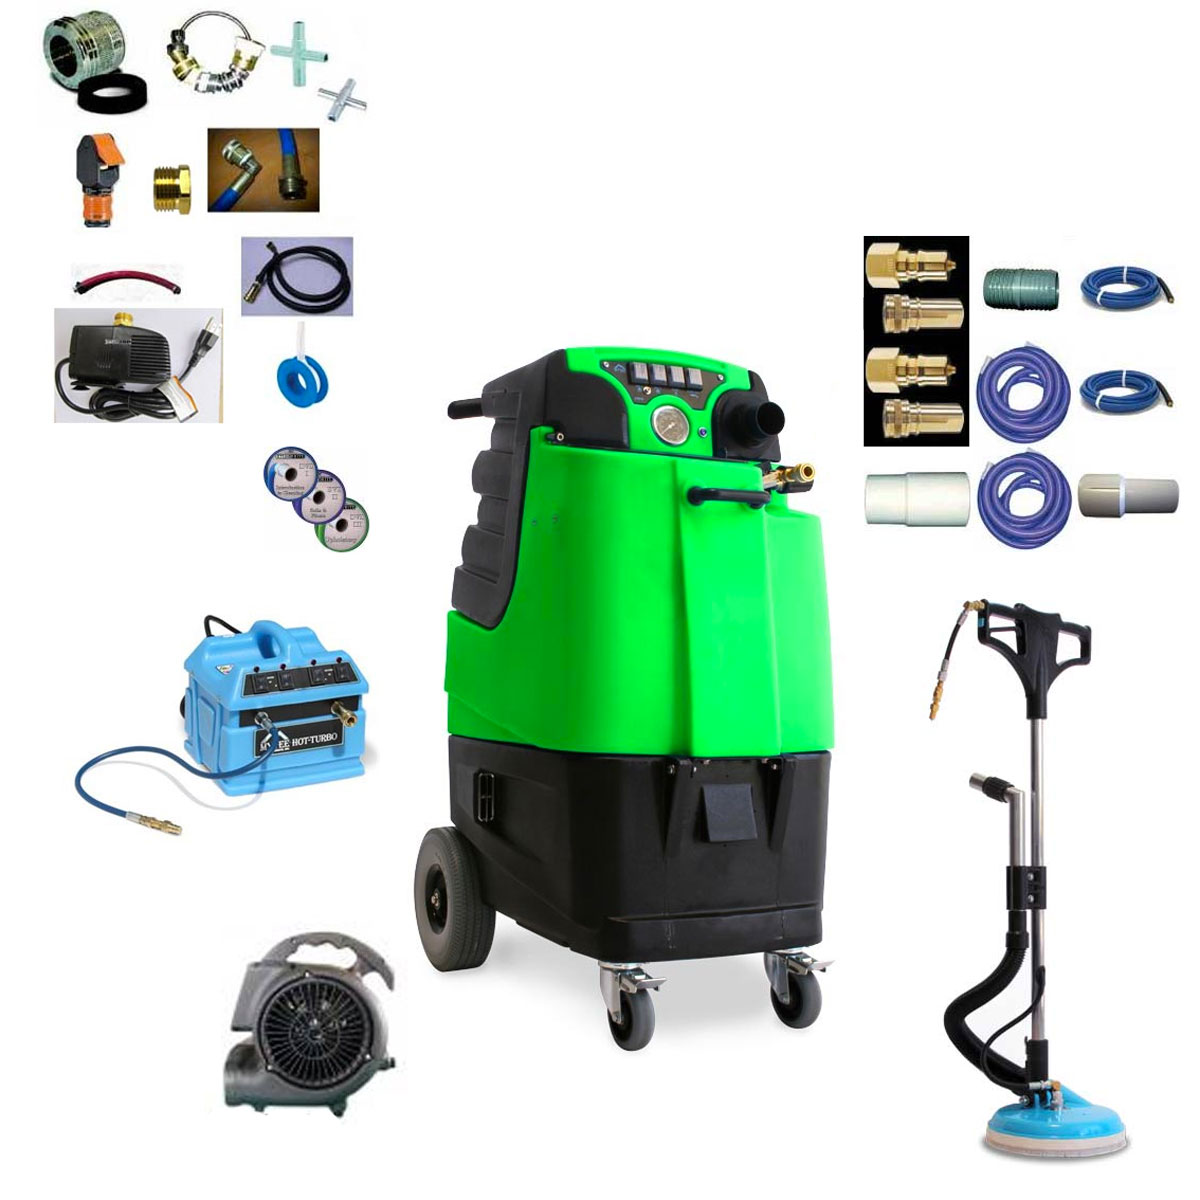 Mytee LTD12G-R Refurbished Speedster Tile Carpet Cleaning Machine 12Gal 1200psi Bundle 20191114 Serial REFB08170209